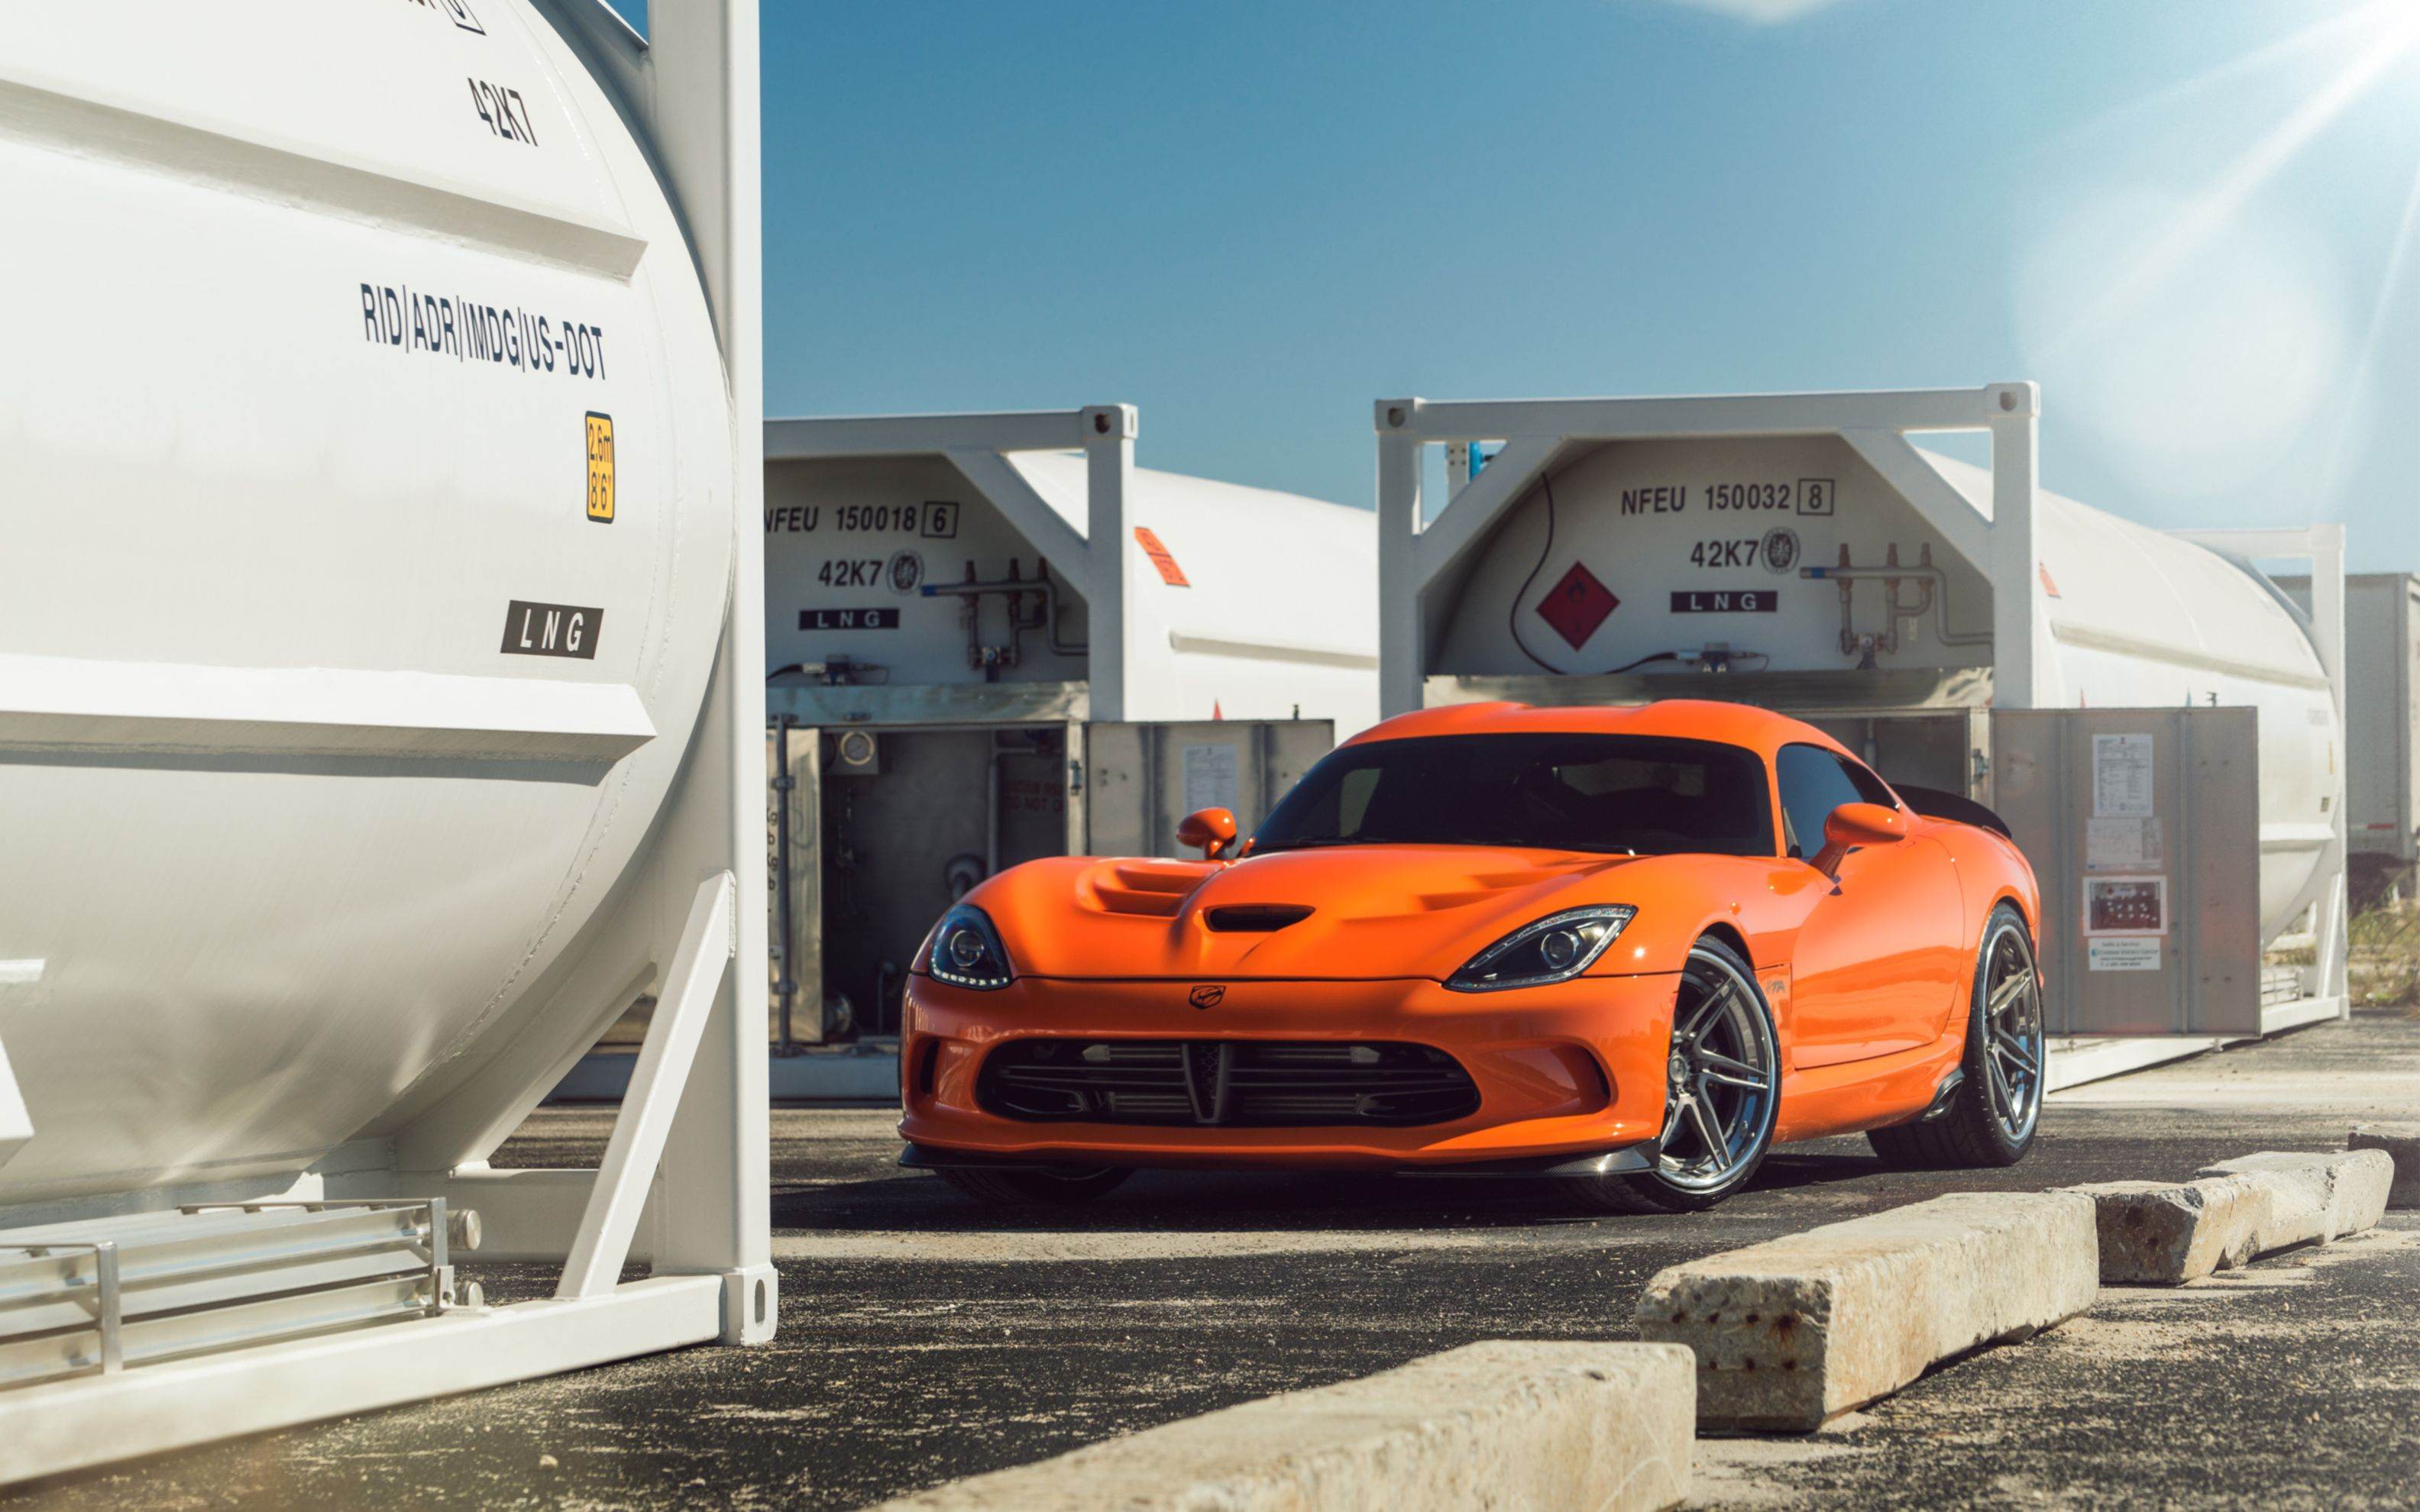 Download free HD Adv1 Wheels Dodge Viper Wide Wallpaper, image